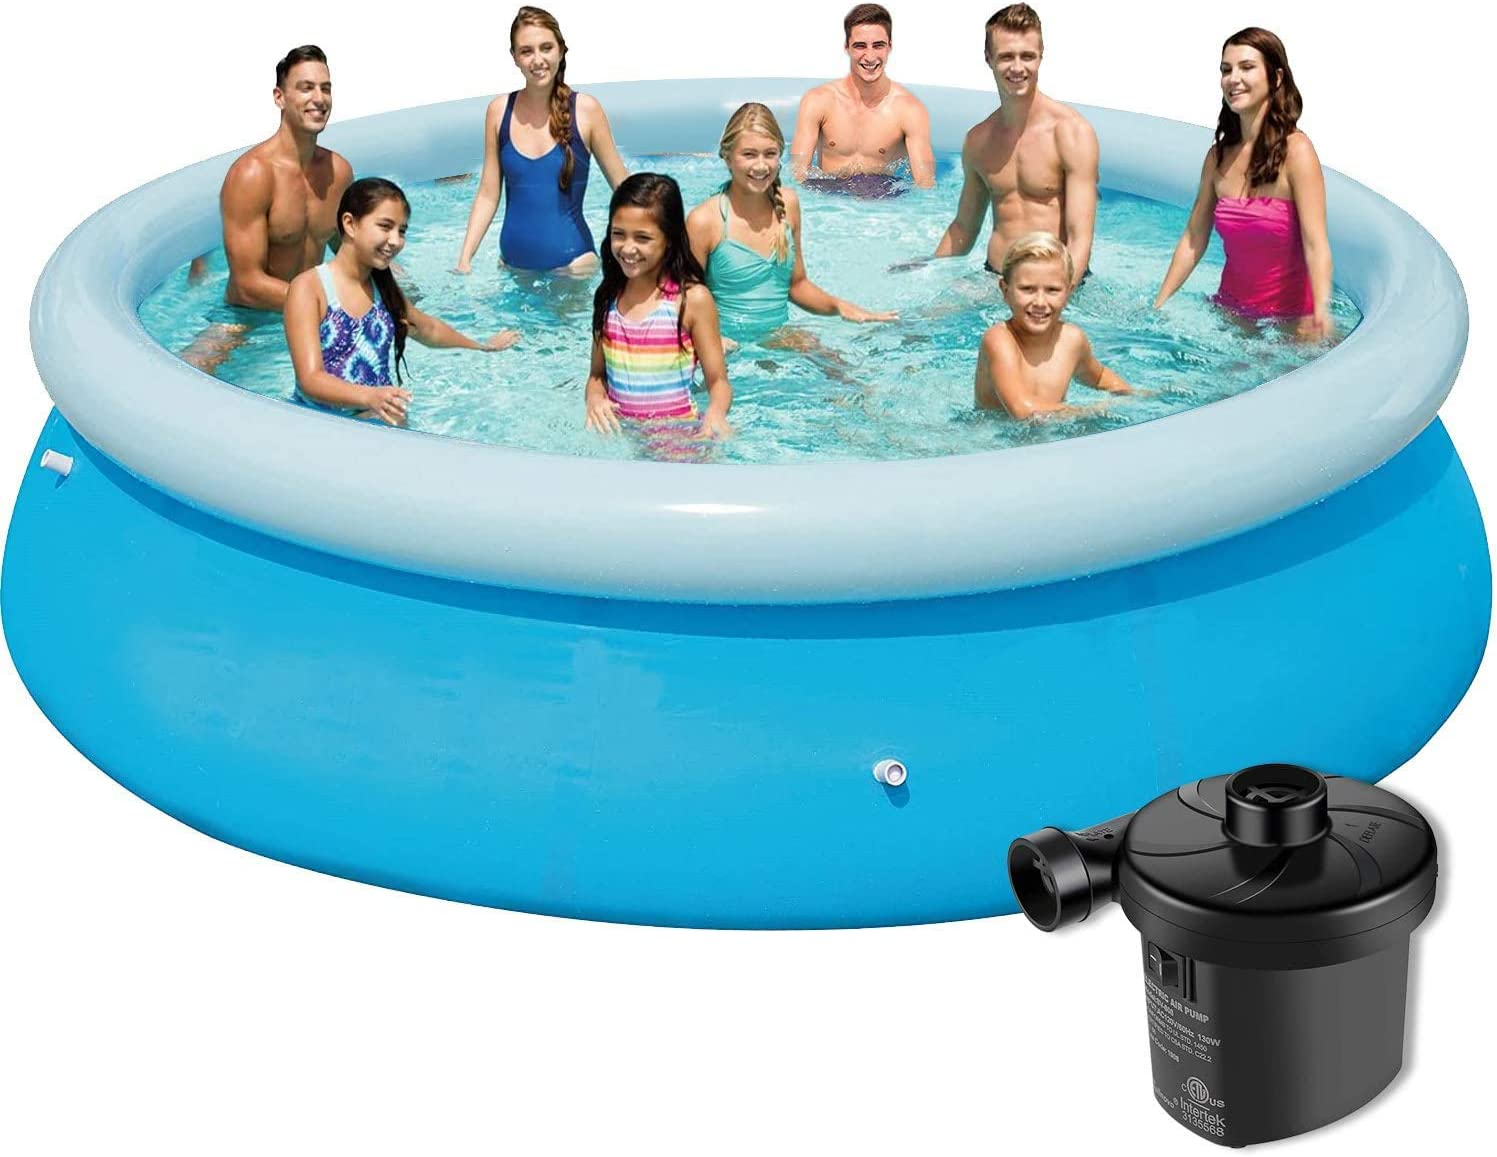 Inflatable Swimming Pools for Kids 10ft Quick Set Round Swimming Pool Above Ground, Outdoor, Yard, Garden - Easy Set Blow up Pool with Electric Air Pump